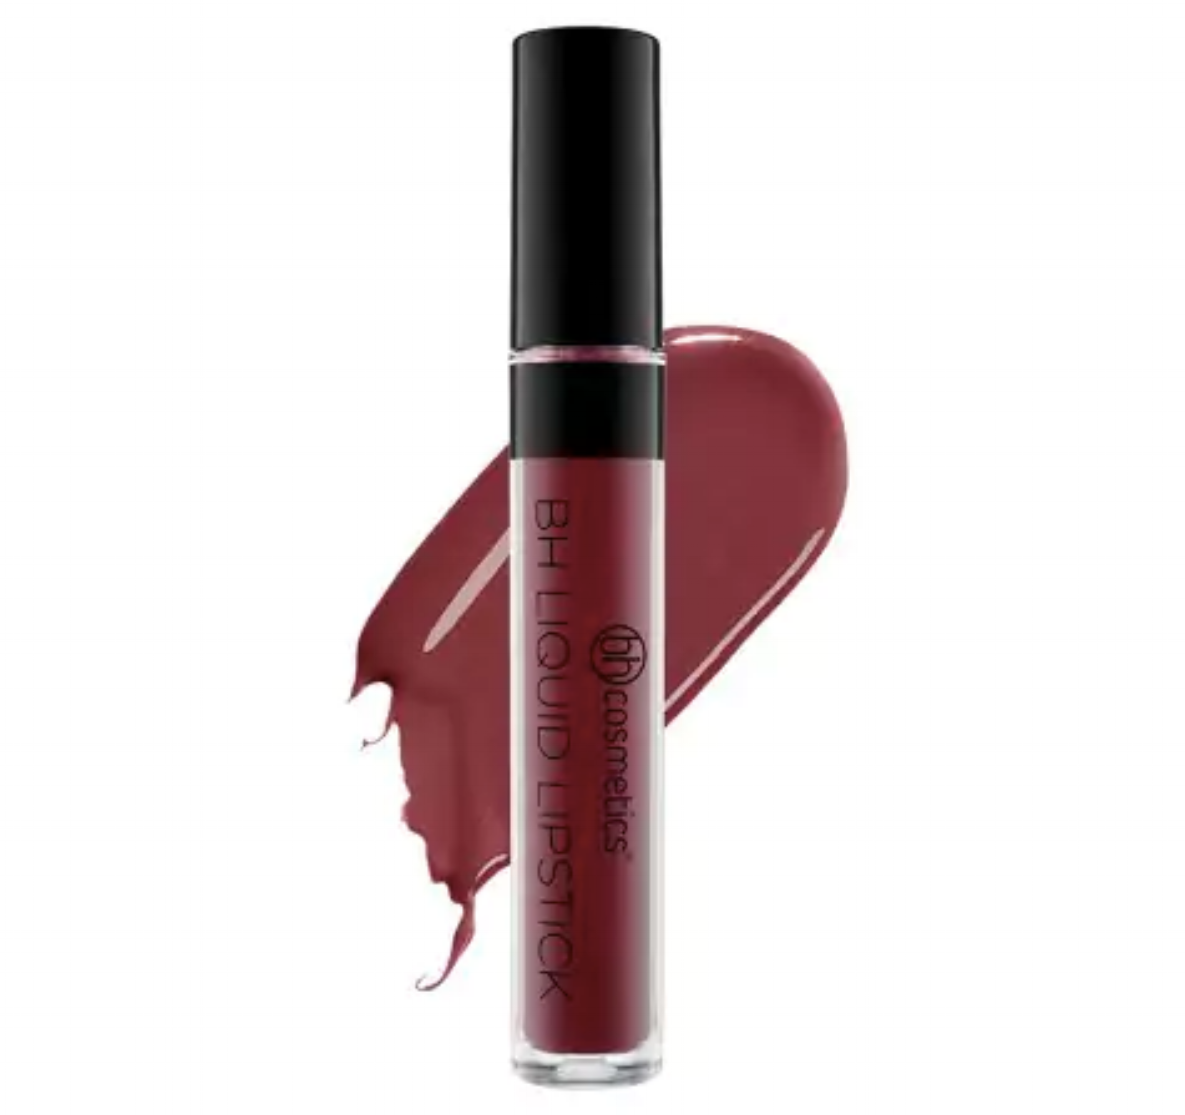 BH Liquid Lipstick - Long-Wearing Matte Lipstick: Lust